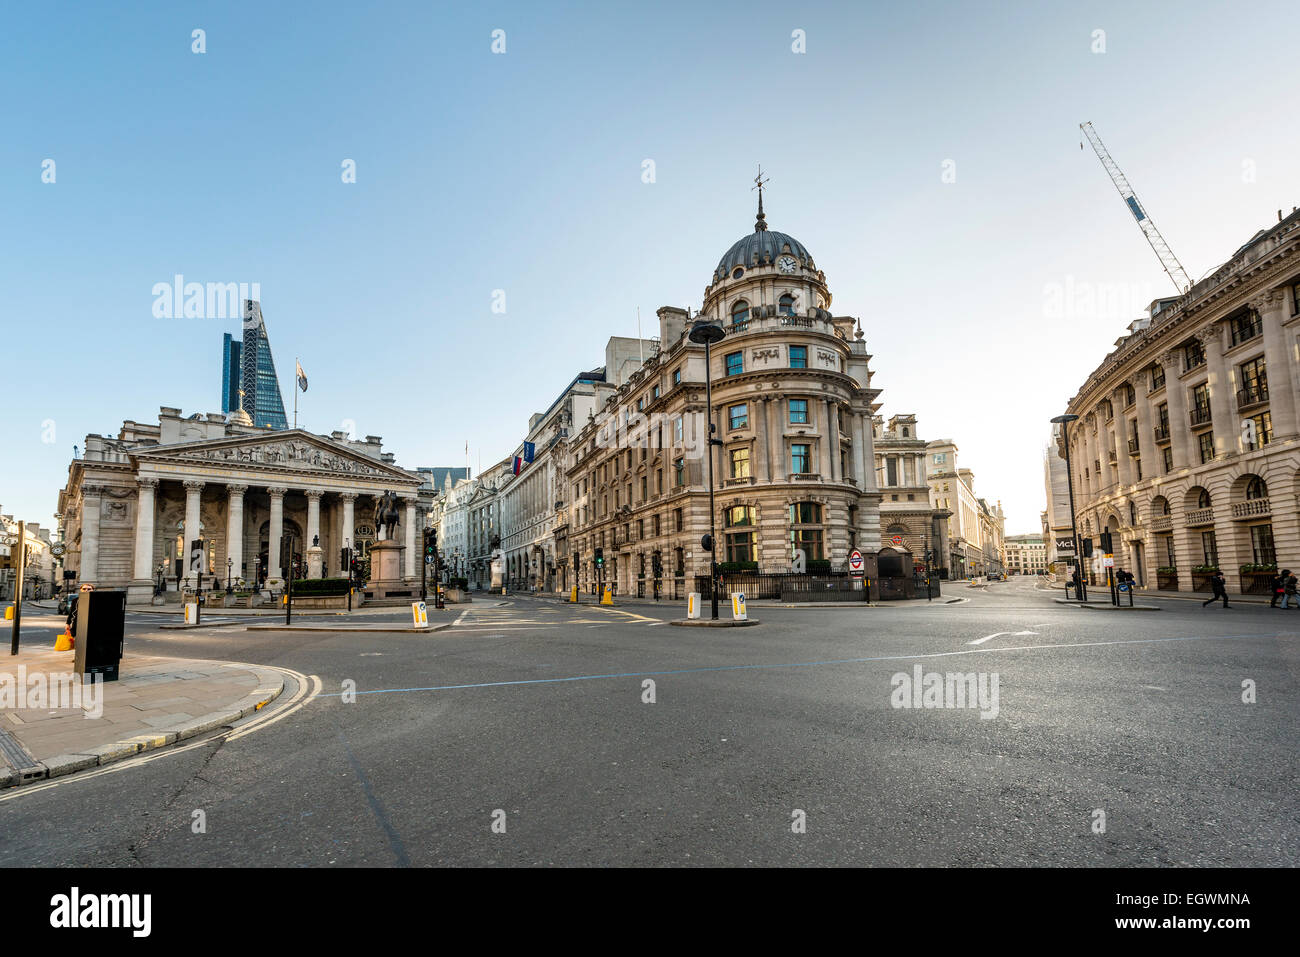 Bank Junction is a road junction in the City of London, seen here unusually empty - Stock Image